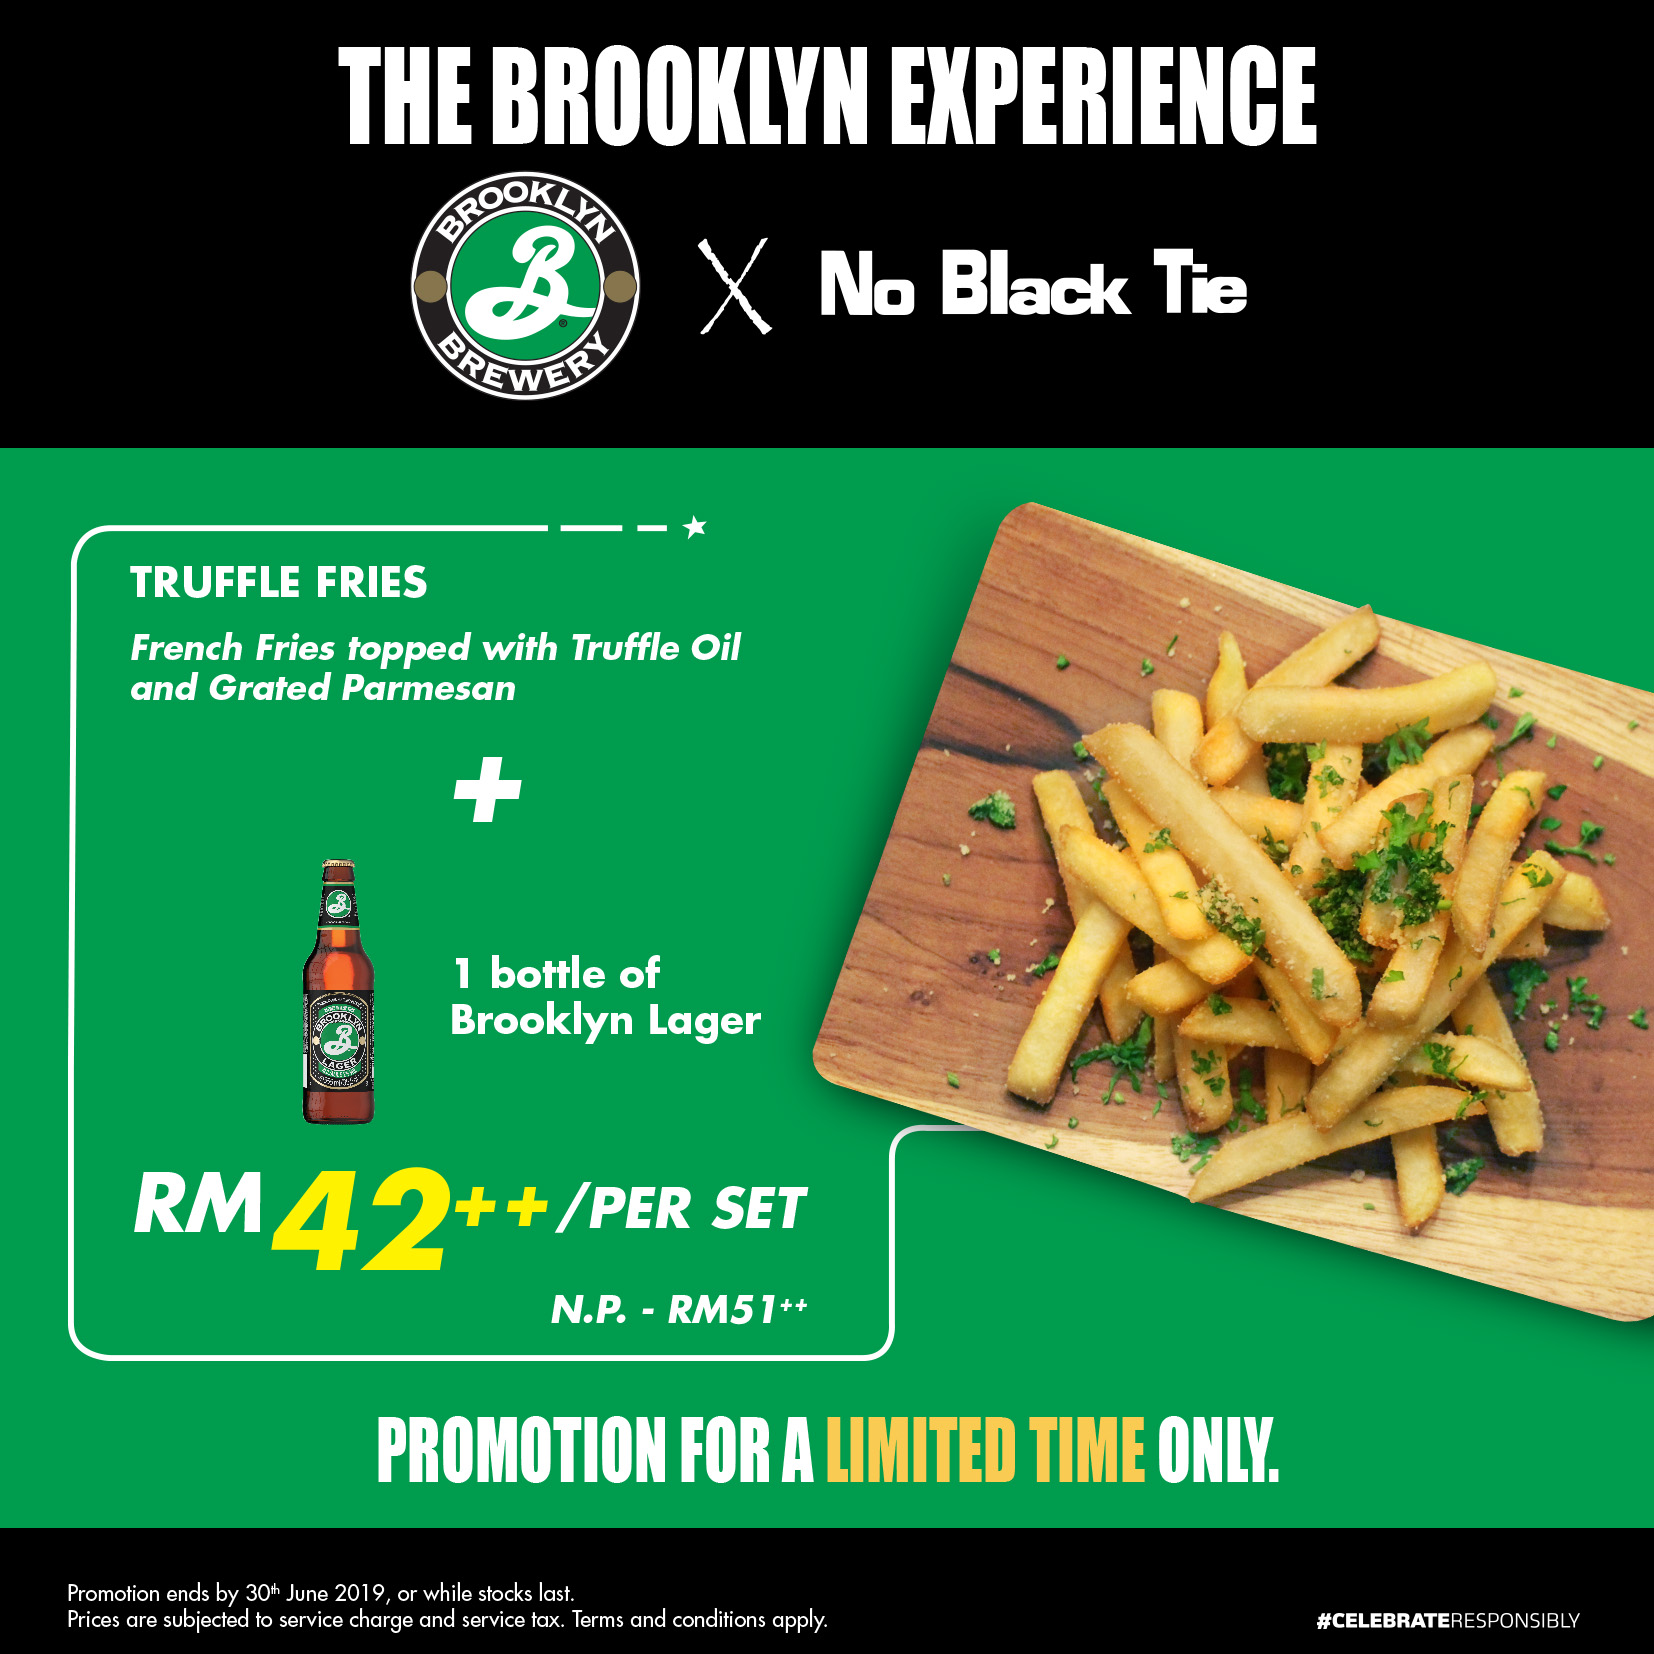 https://i1.wp.com/www.noblacktie.com.my/web/wp-content/uploads/2019/04/Brooklyn-NoBlackTie_FB-Posting_TRUFFLE-FRIES_1654Wx1654Hpx_V1_FA-REF.jpg?resize=1170%2C2319&ssl=1